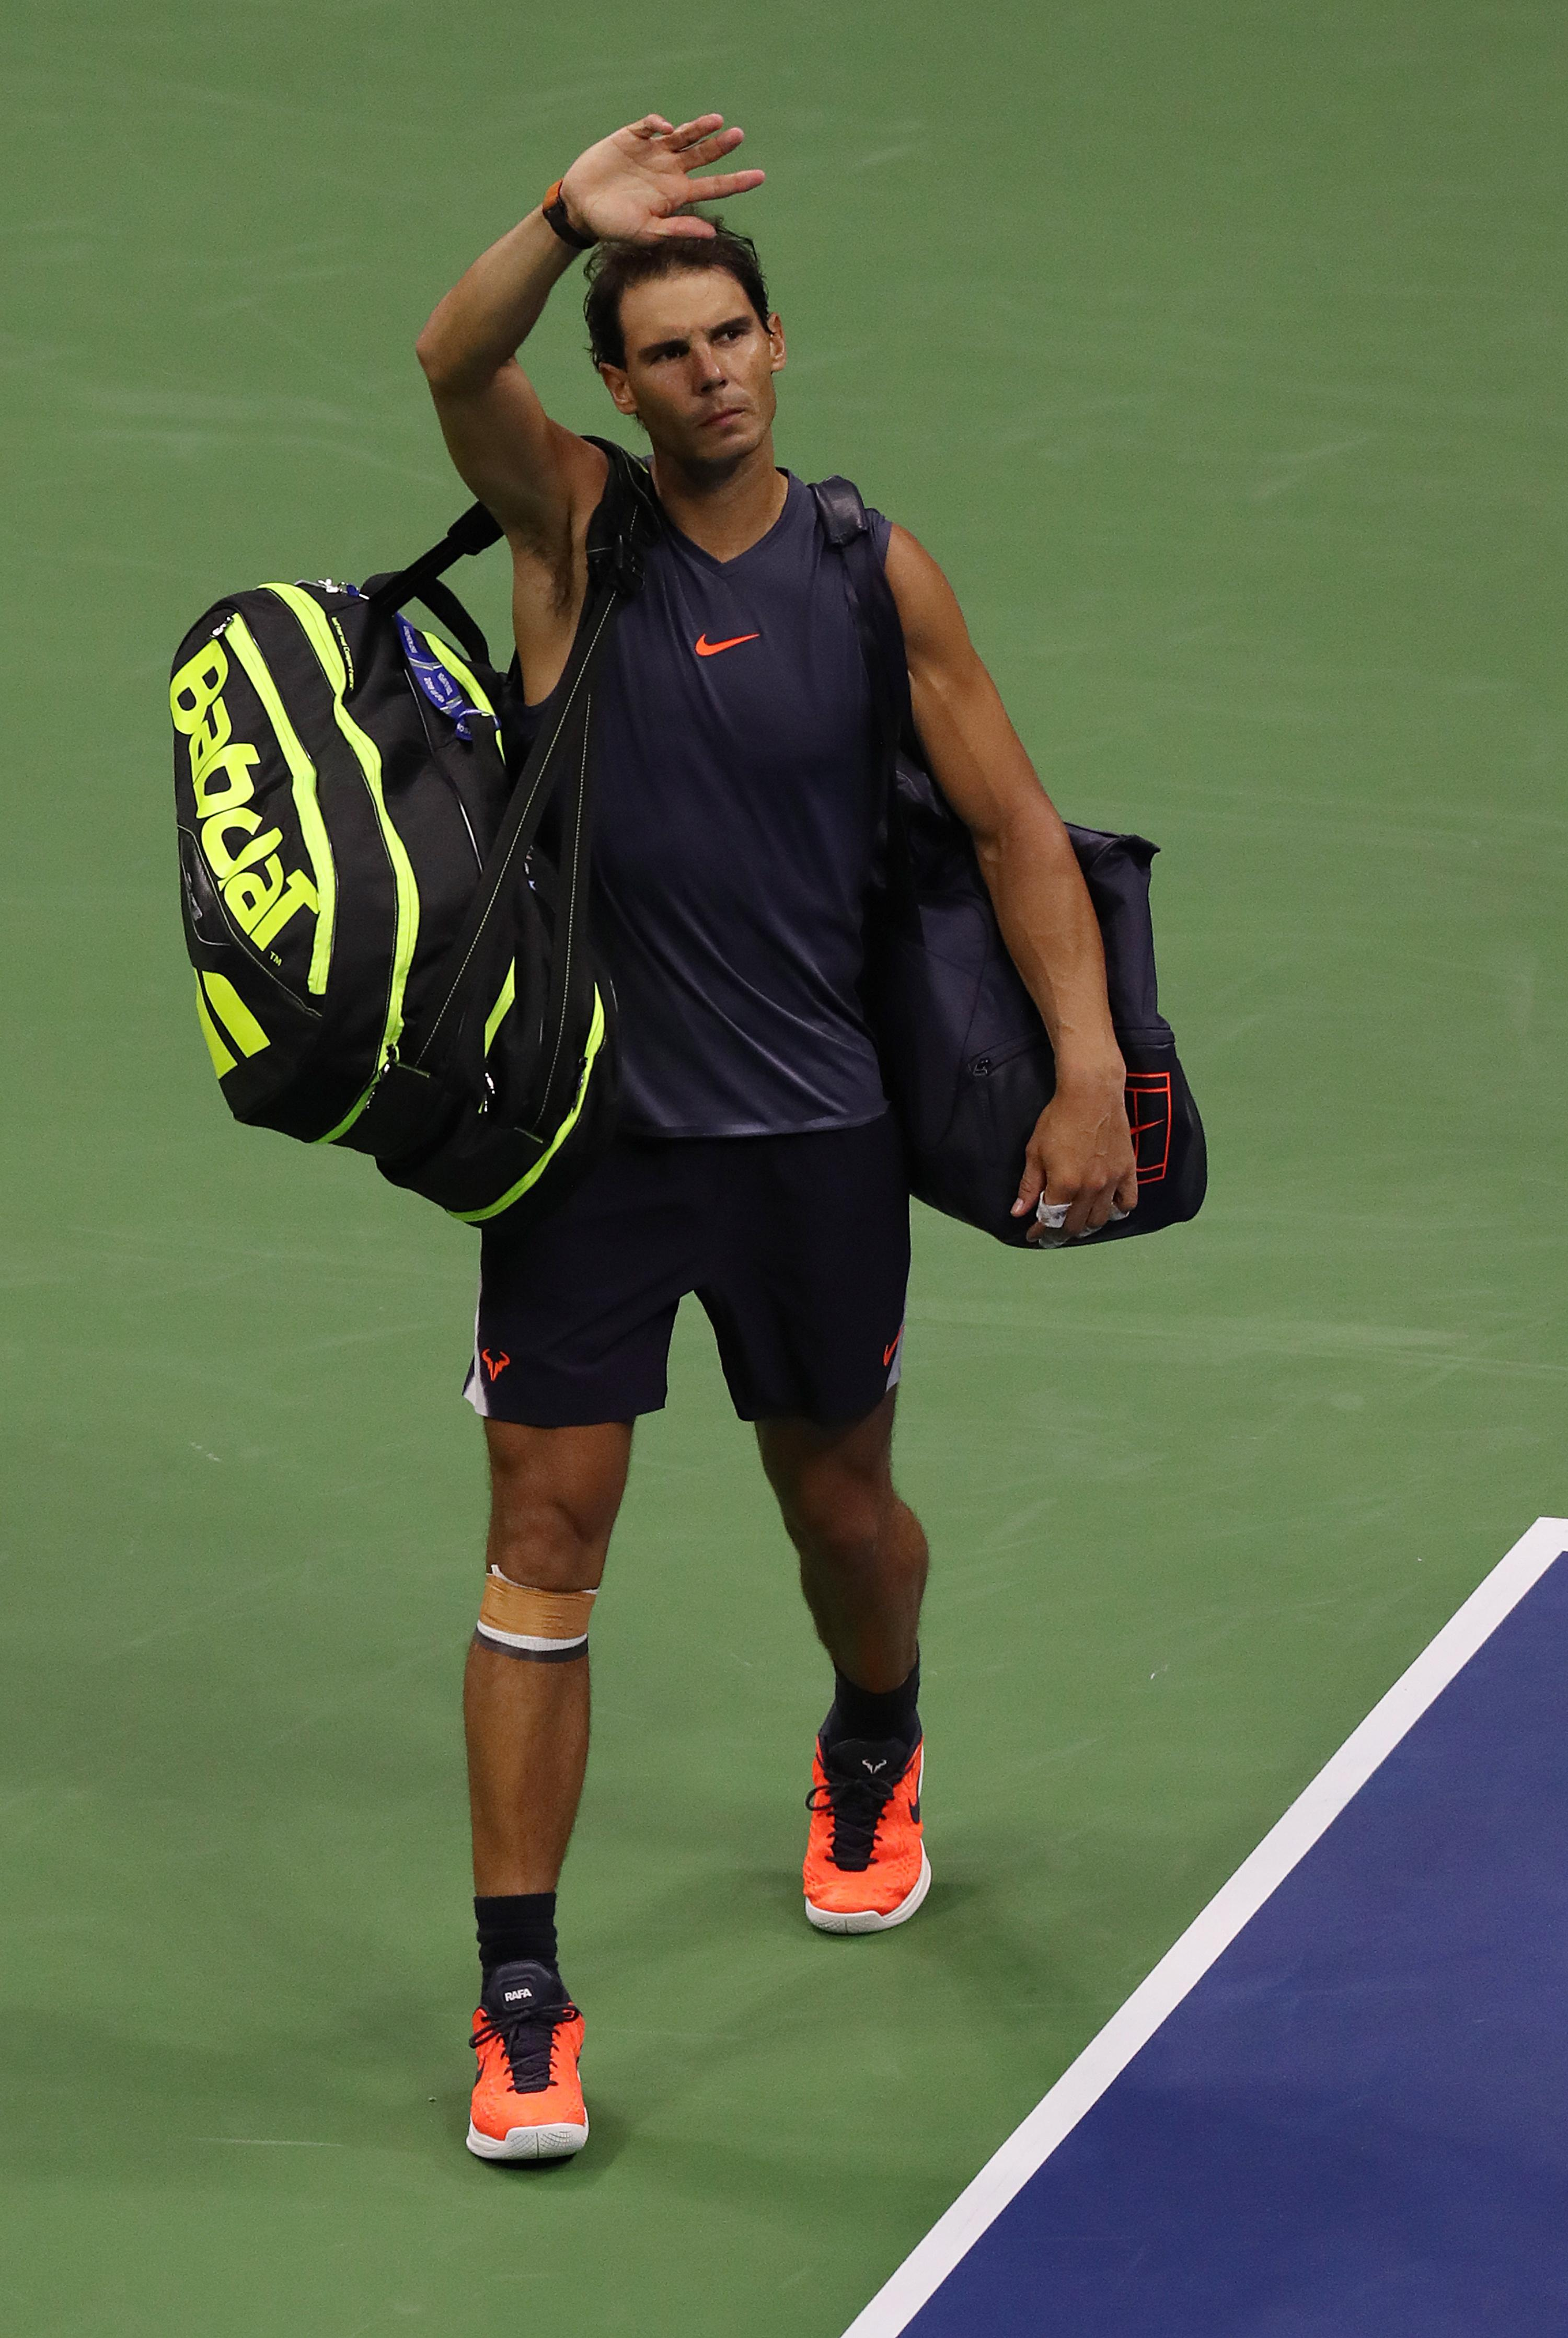 Rafael Nadal had to retire against Juan Martin del Potro in the US Open semi-final with an injury